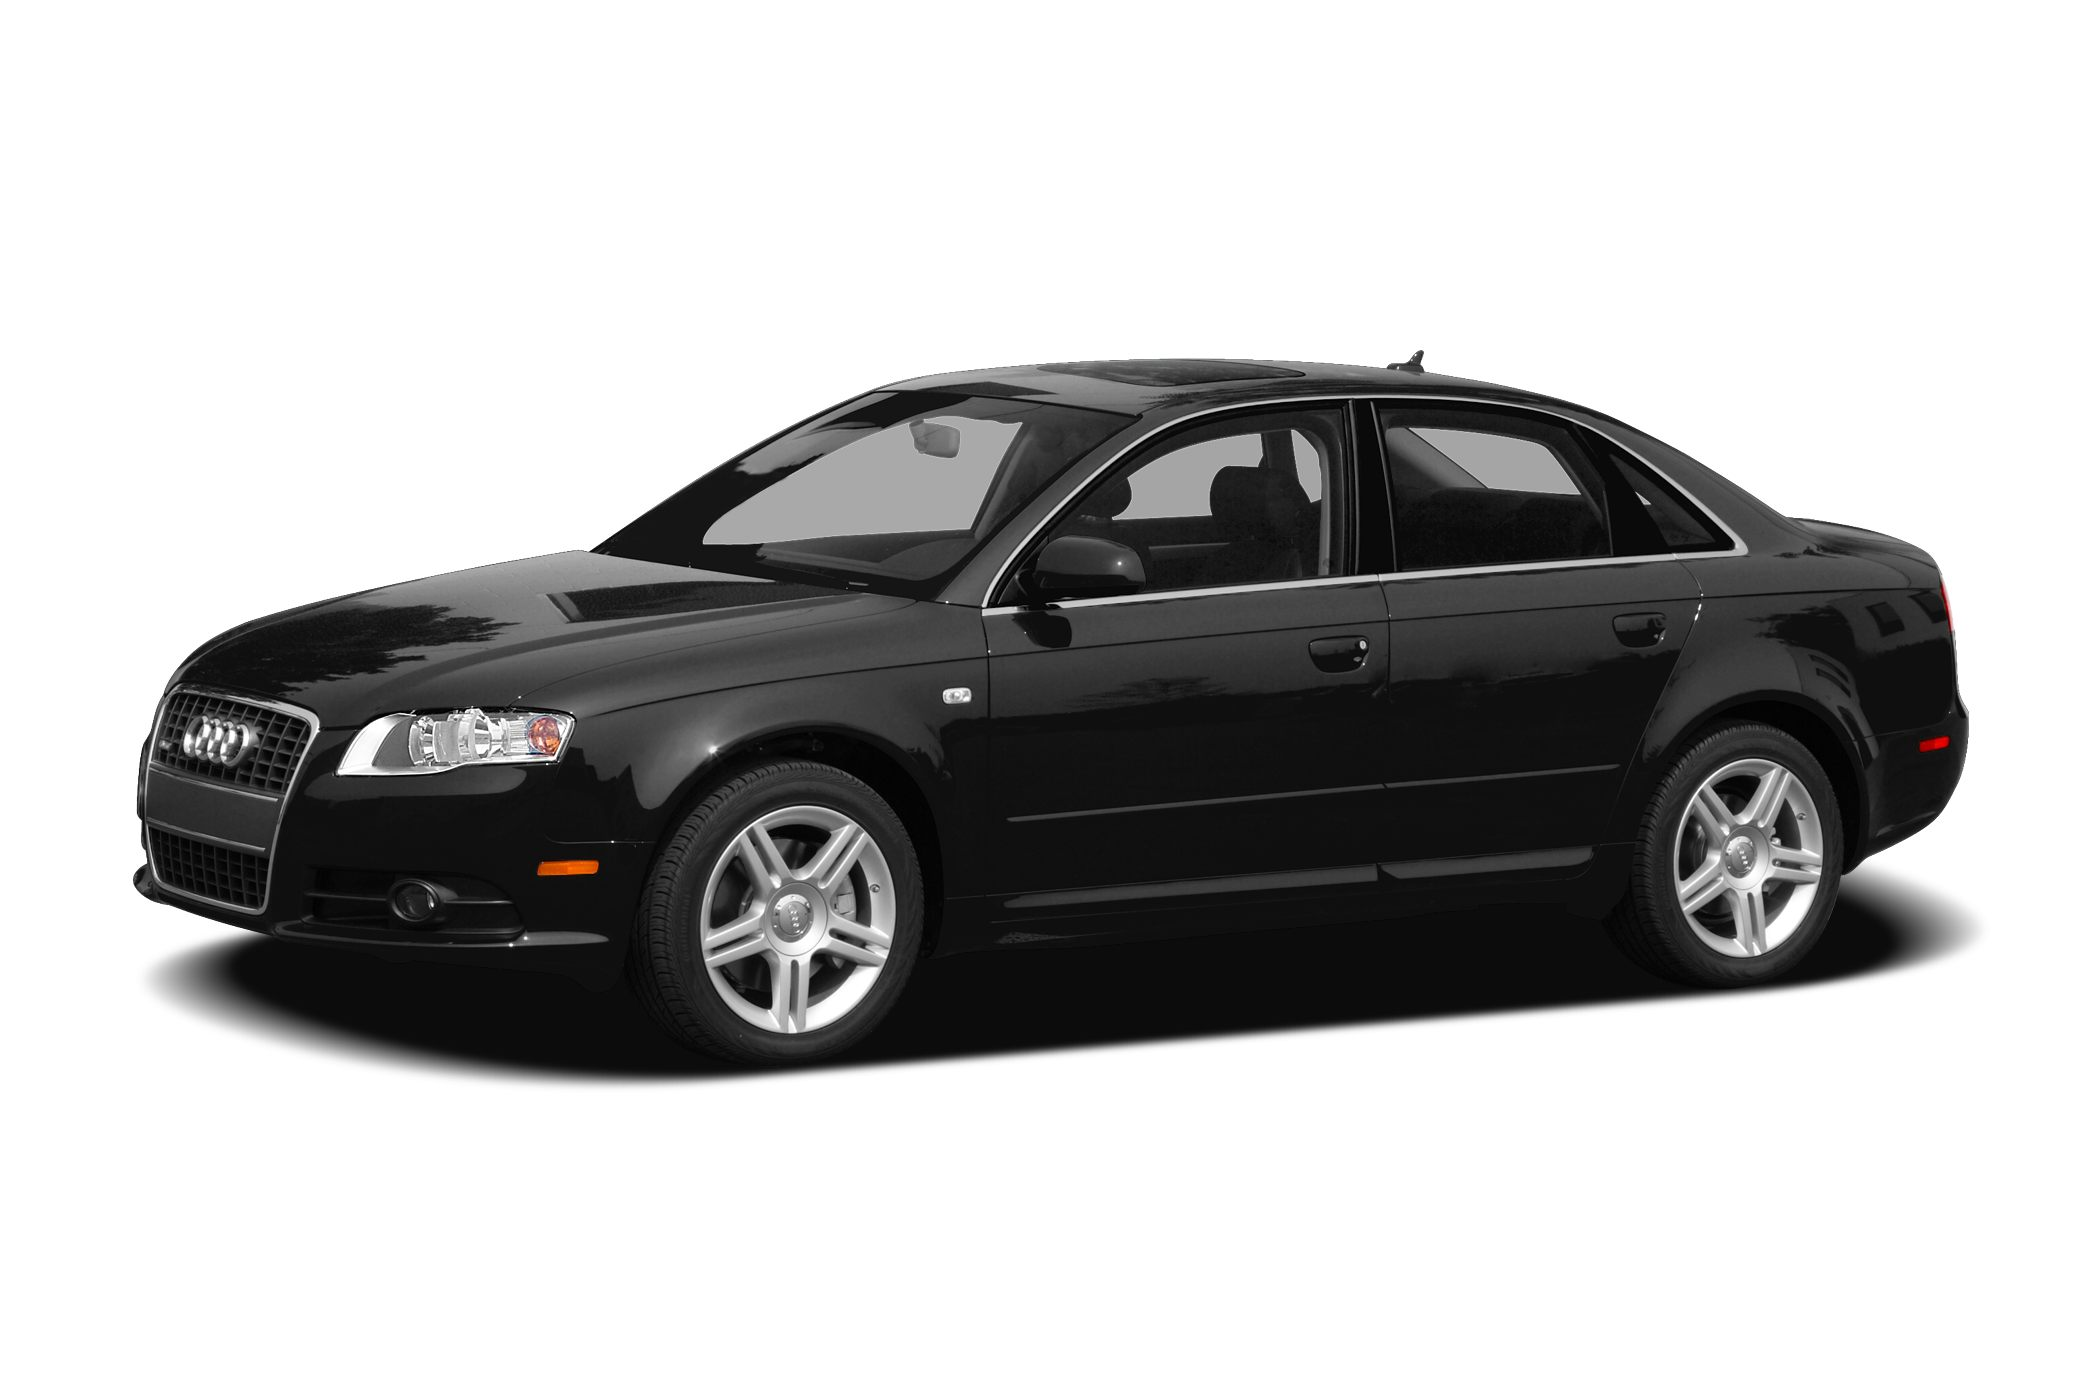 2008 Audi A4 2 0T Special Edition 4dr Front wheel Drive FrontTrak